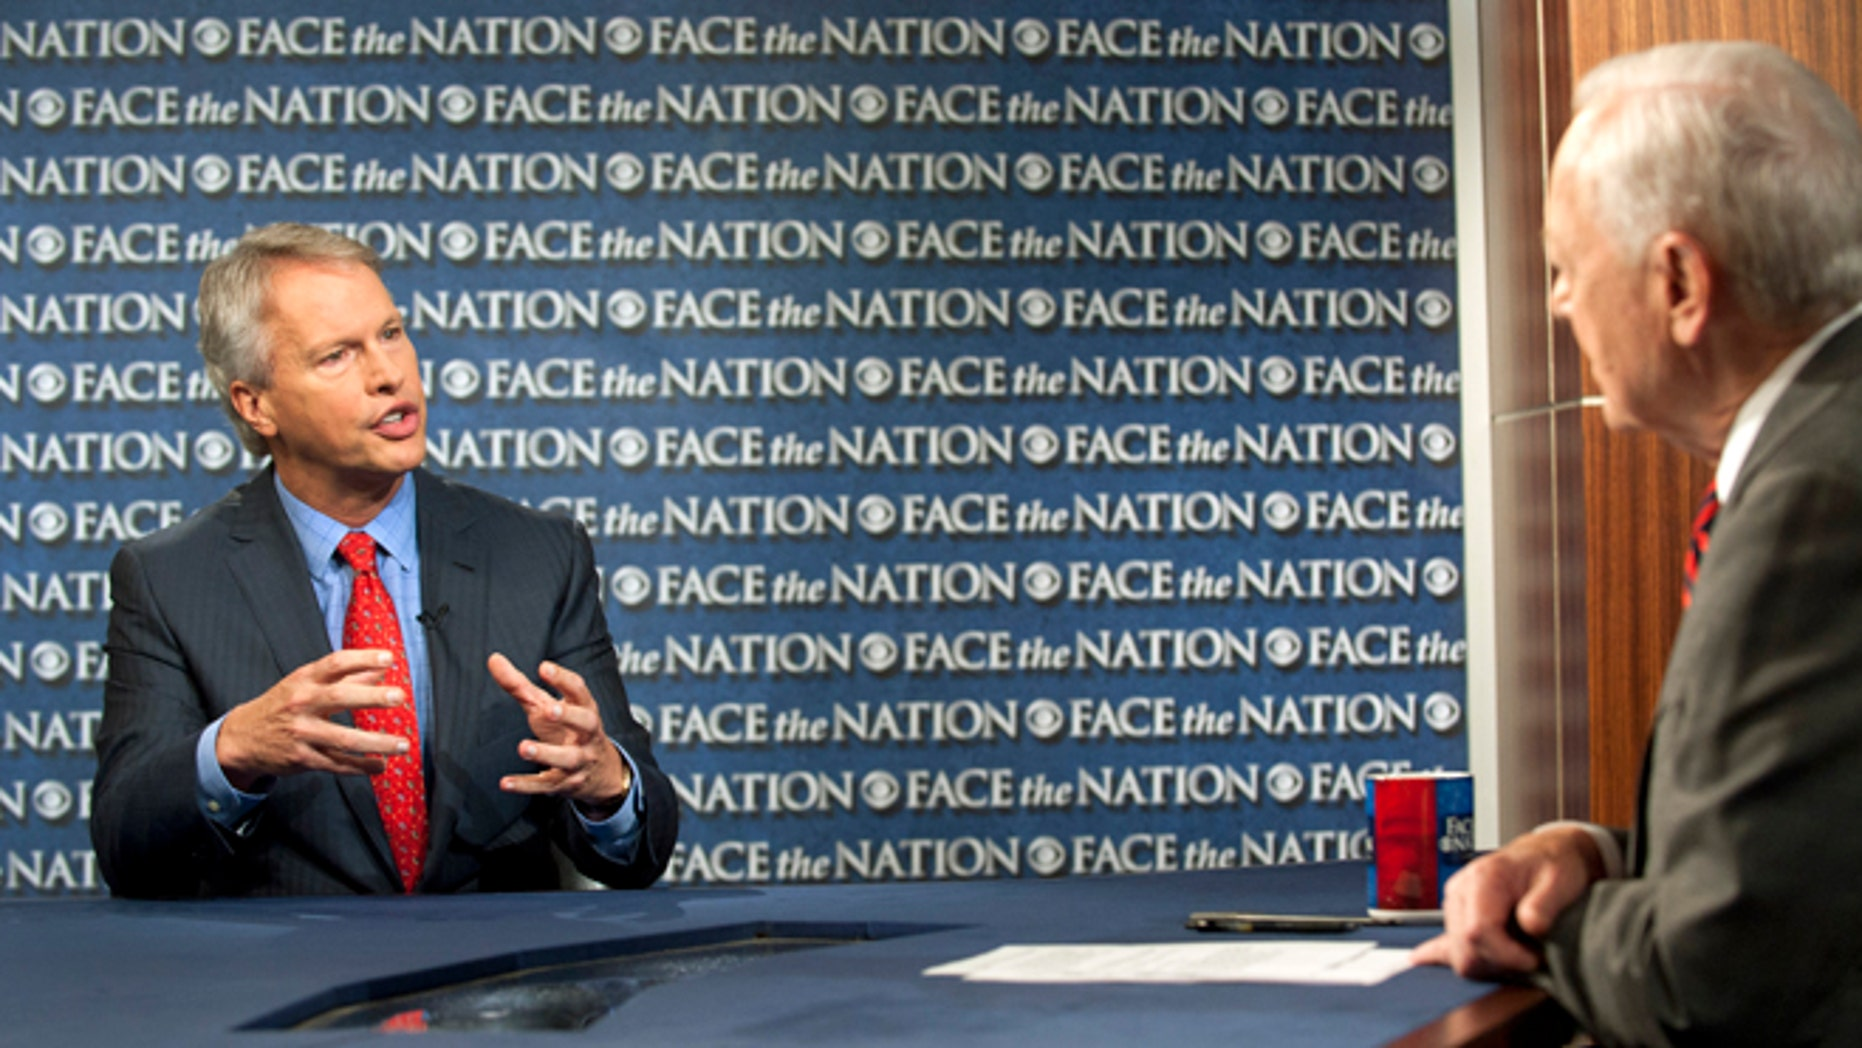 """May 19, 2013: Gary Pruitt, the President and CEO of the Associated Press, discusses the leak investigation that led to his reporters' phone records being subpoenaed by the Justice Department on CBS's """"Face the Nation"""" in Washington. Pruitt says DoJ's seizure of AP journalists' phone records was """"unconstitutional"""", and that the secret subpoena of reporters' phone records has made sources less willing to talk to AP journalists."""